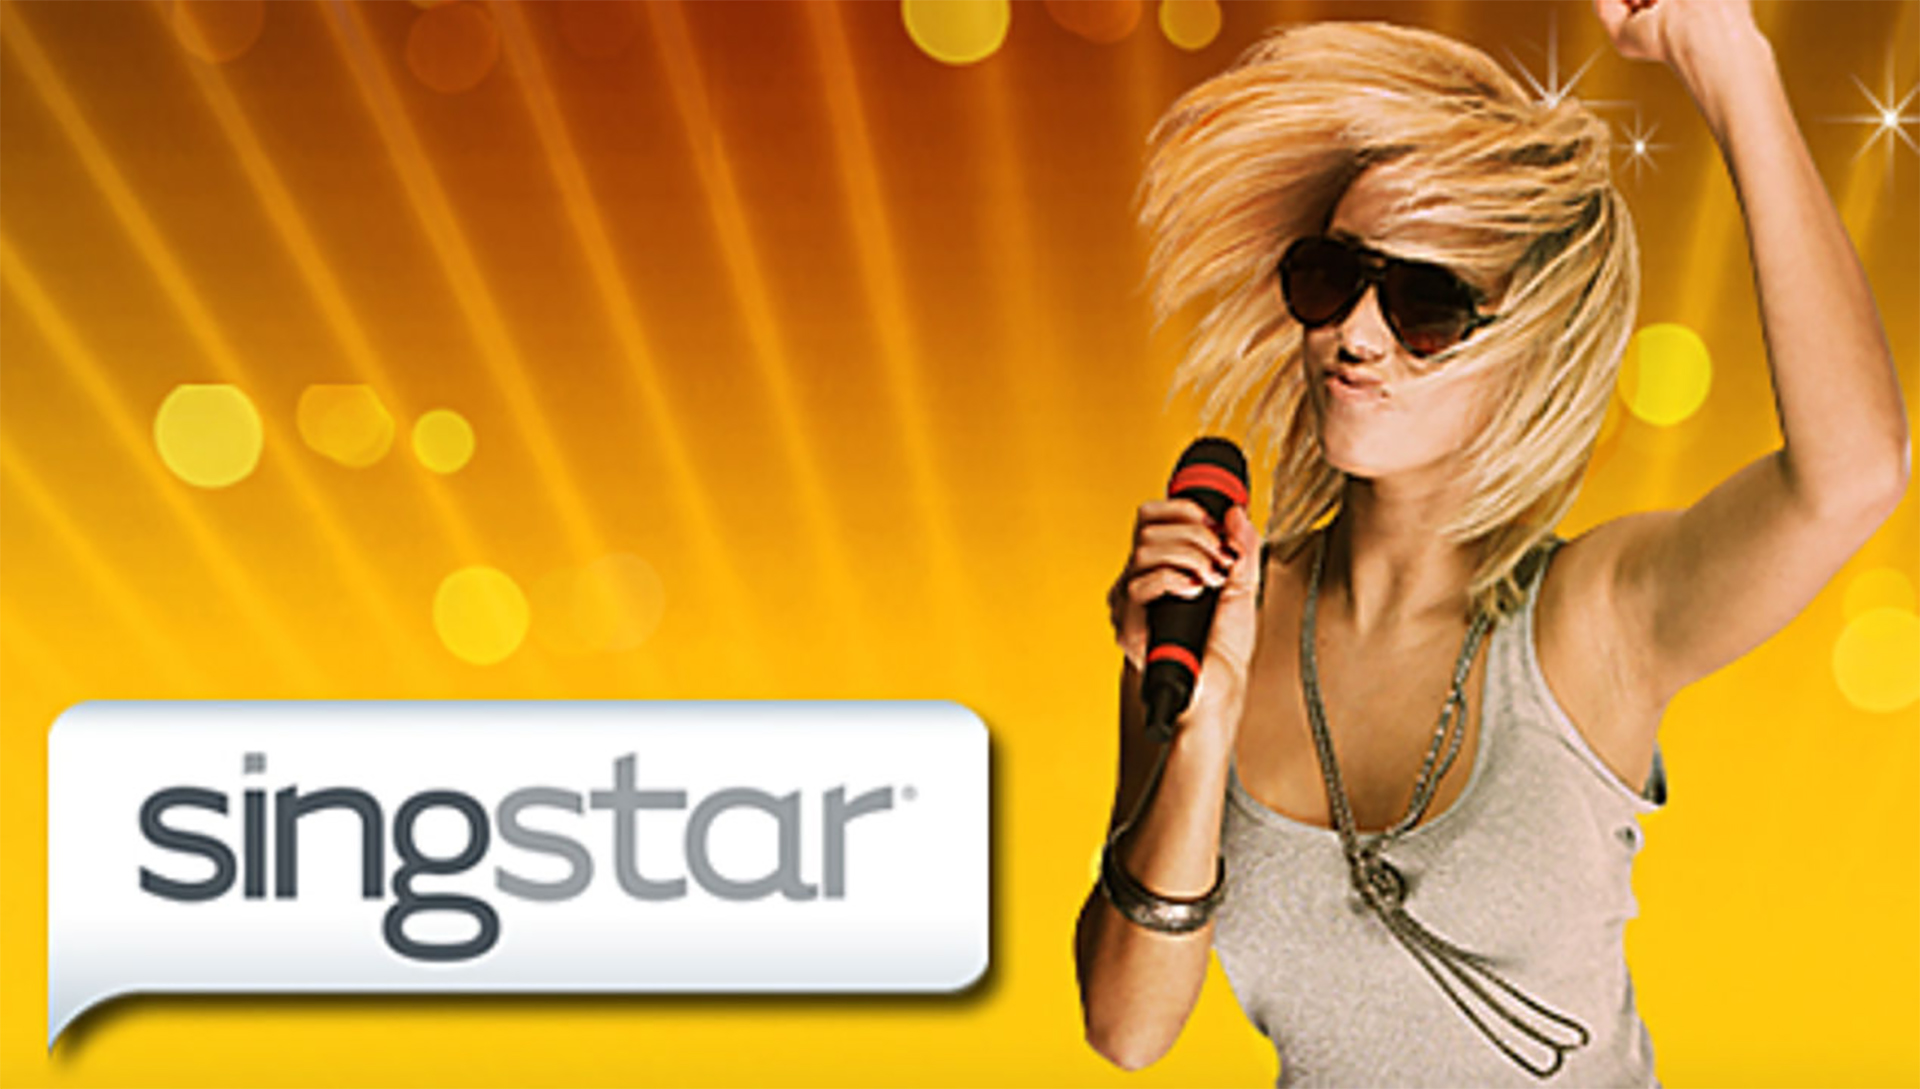 London Studio - SingStar